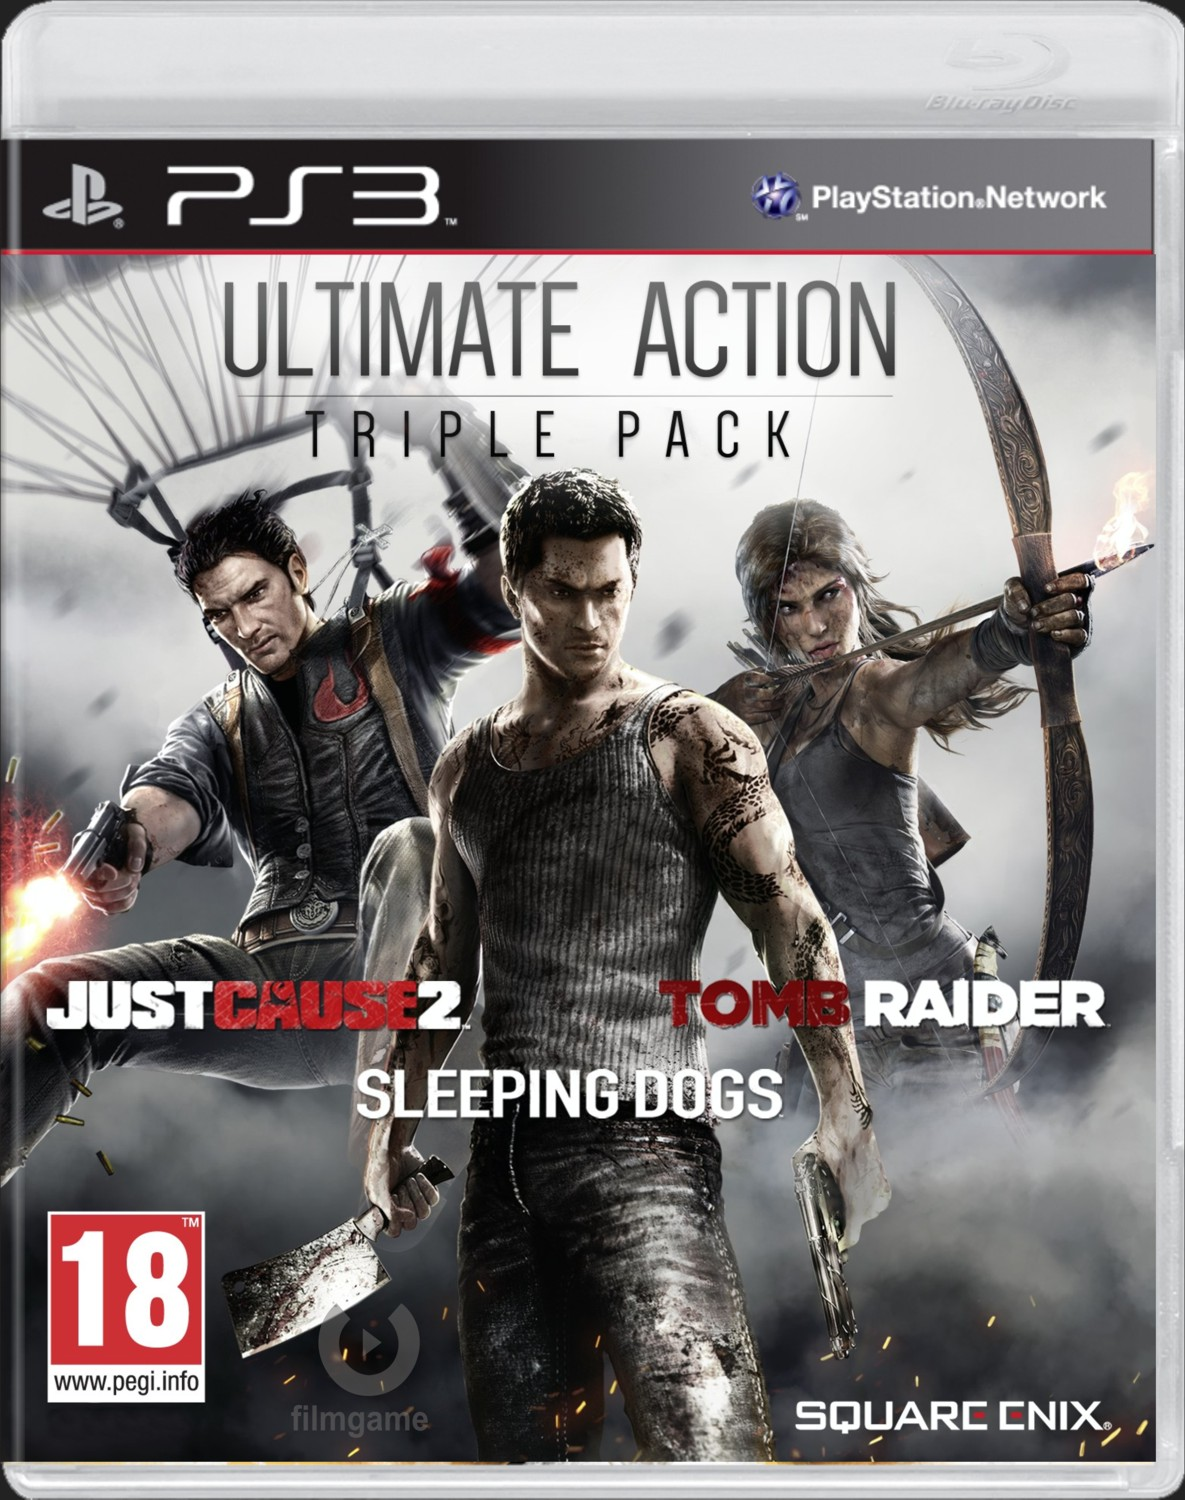 ULTIMATE ACTION TRIPLE PACK (JUST CAUSE 2 + SLEEPING DOGS + TOMB RAIDER) - PS3